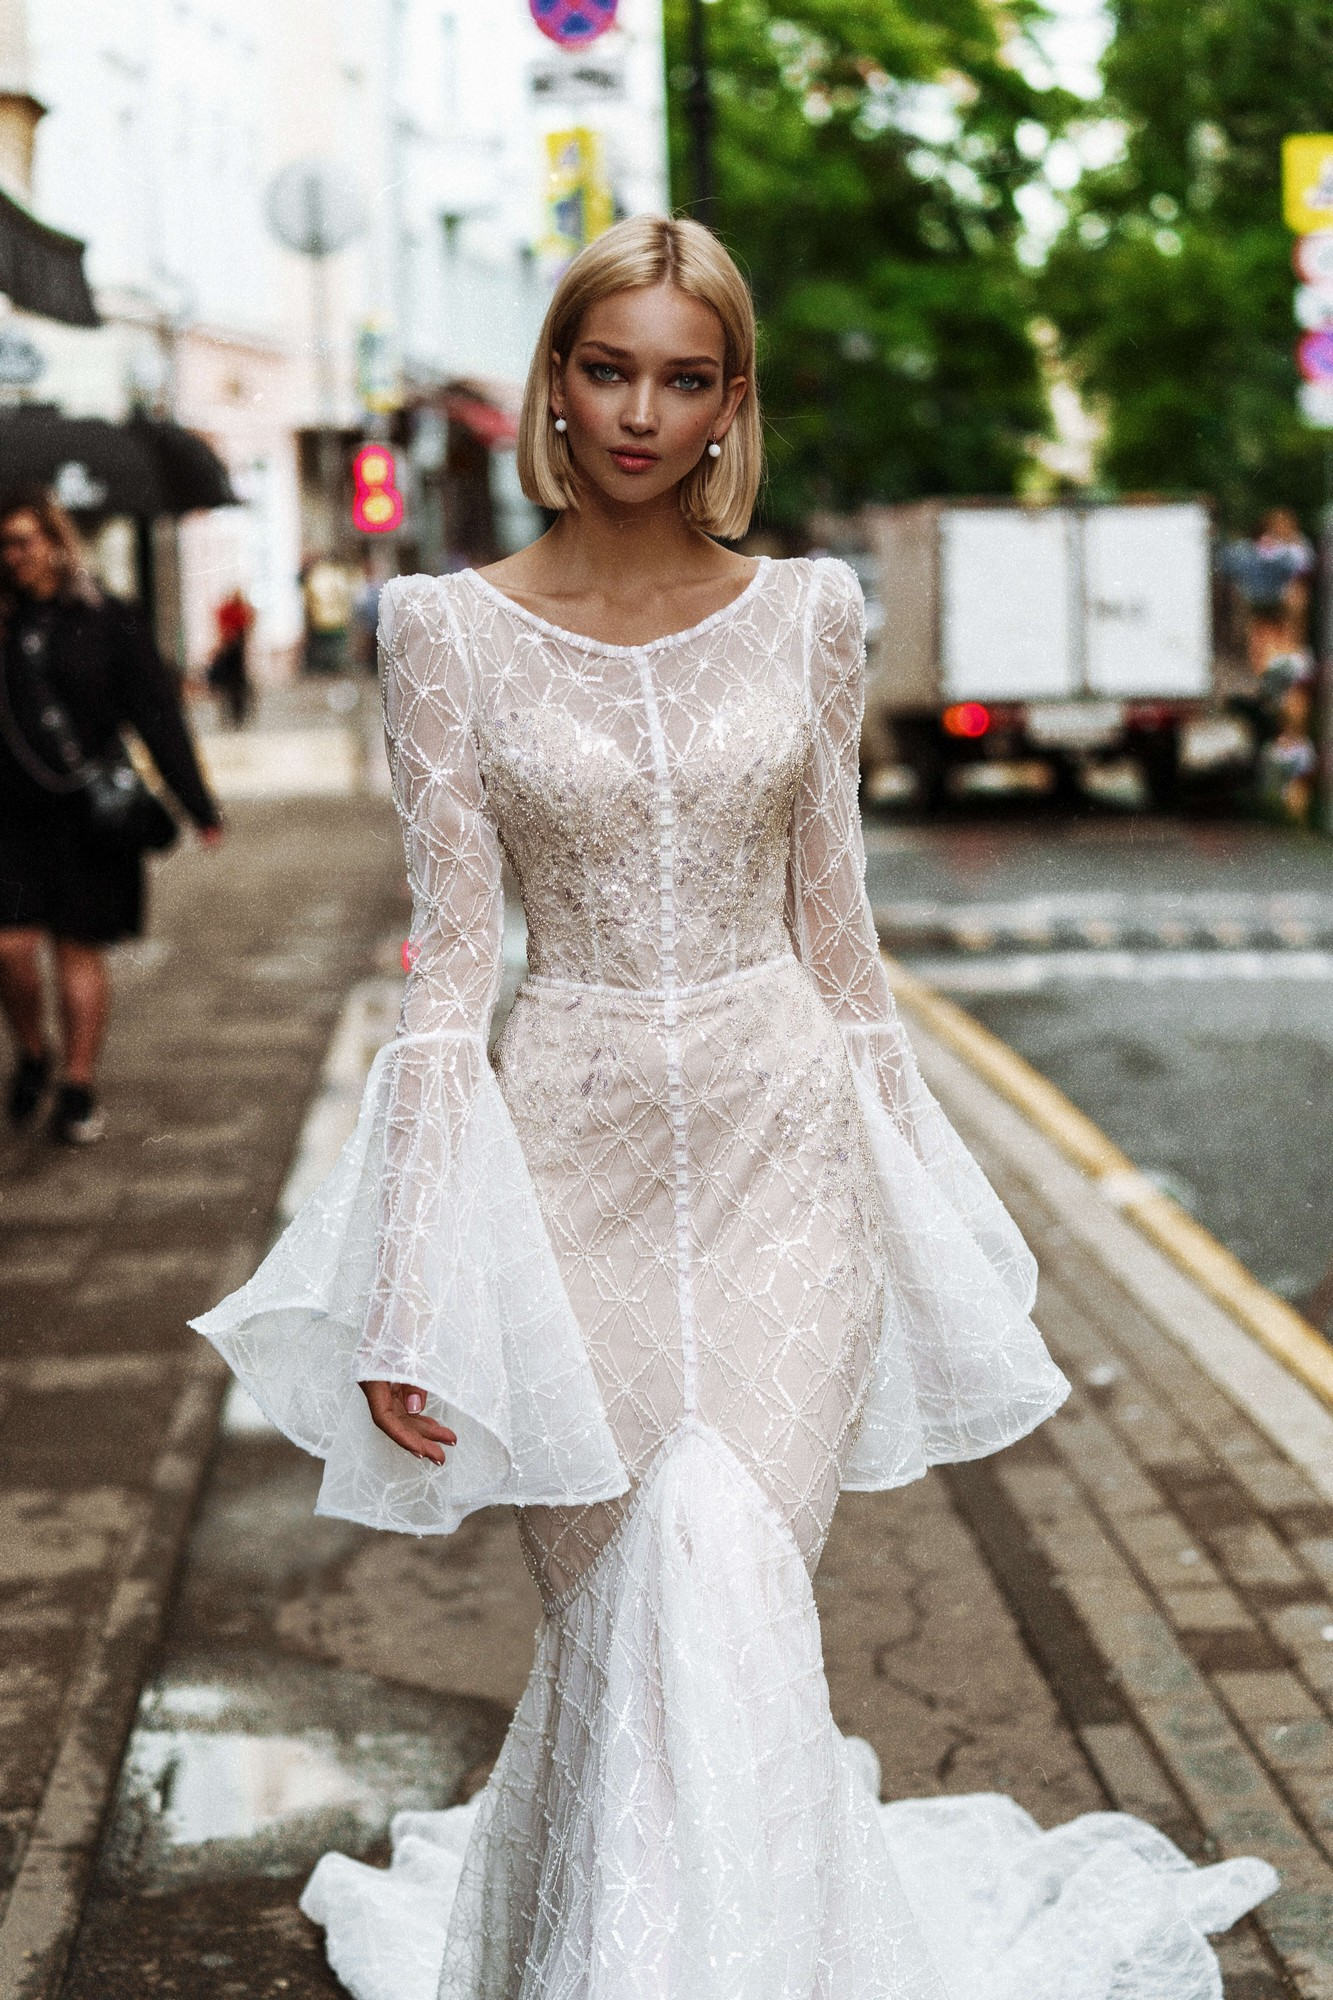 Margate from the Oh My Bride! Collection by Rara Avis